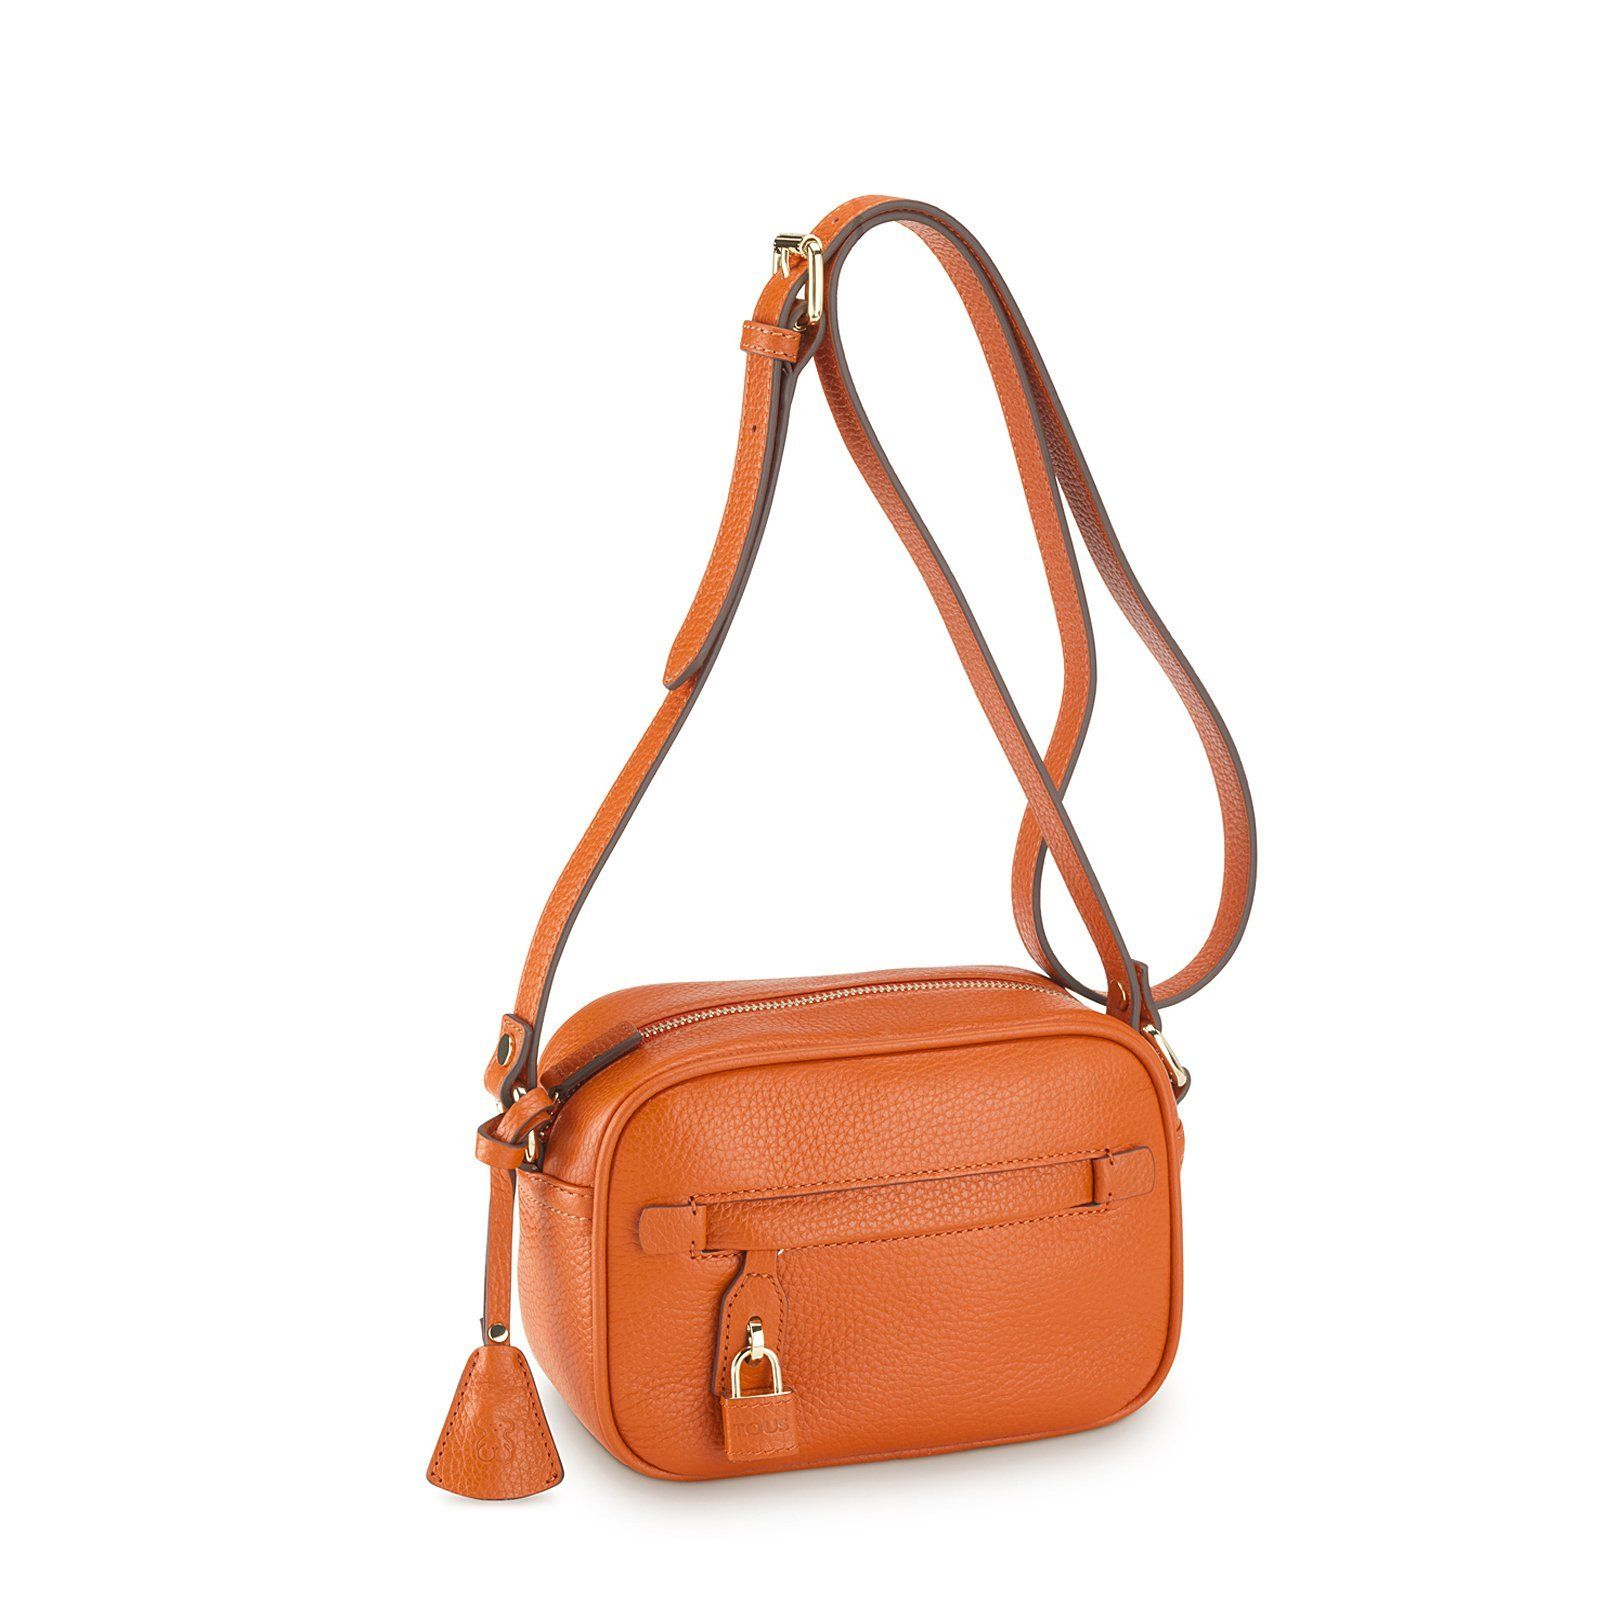 TOUS Gentle collection handbag